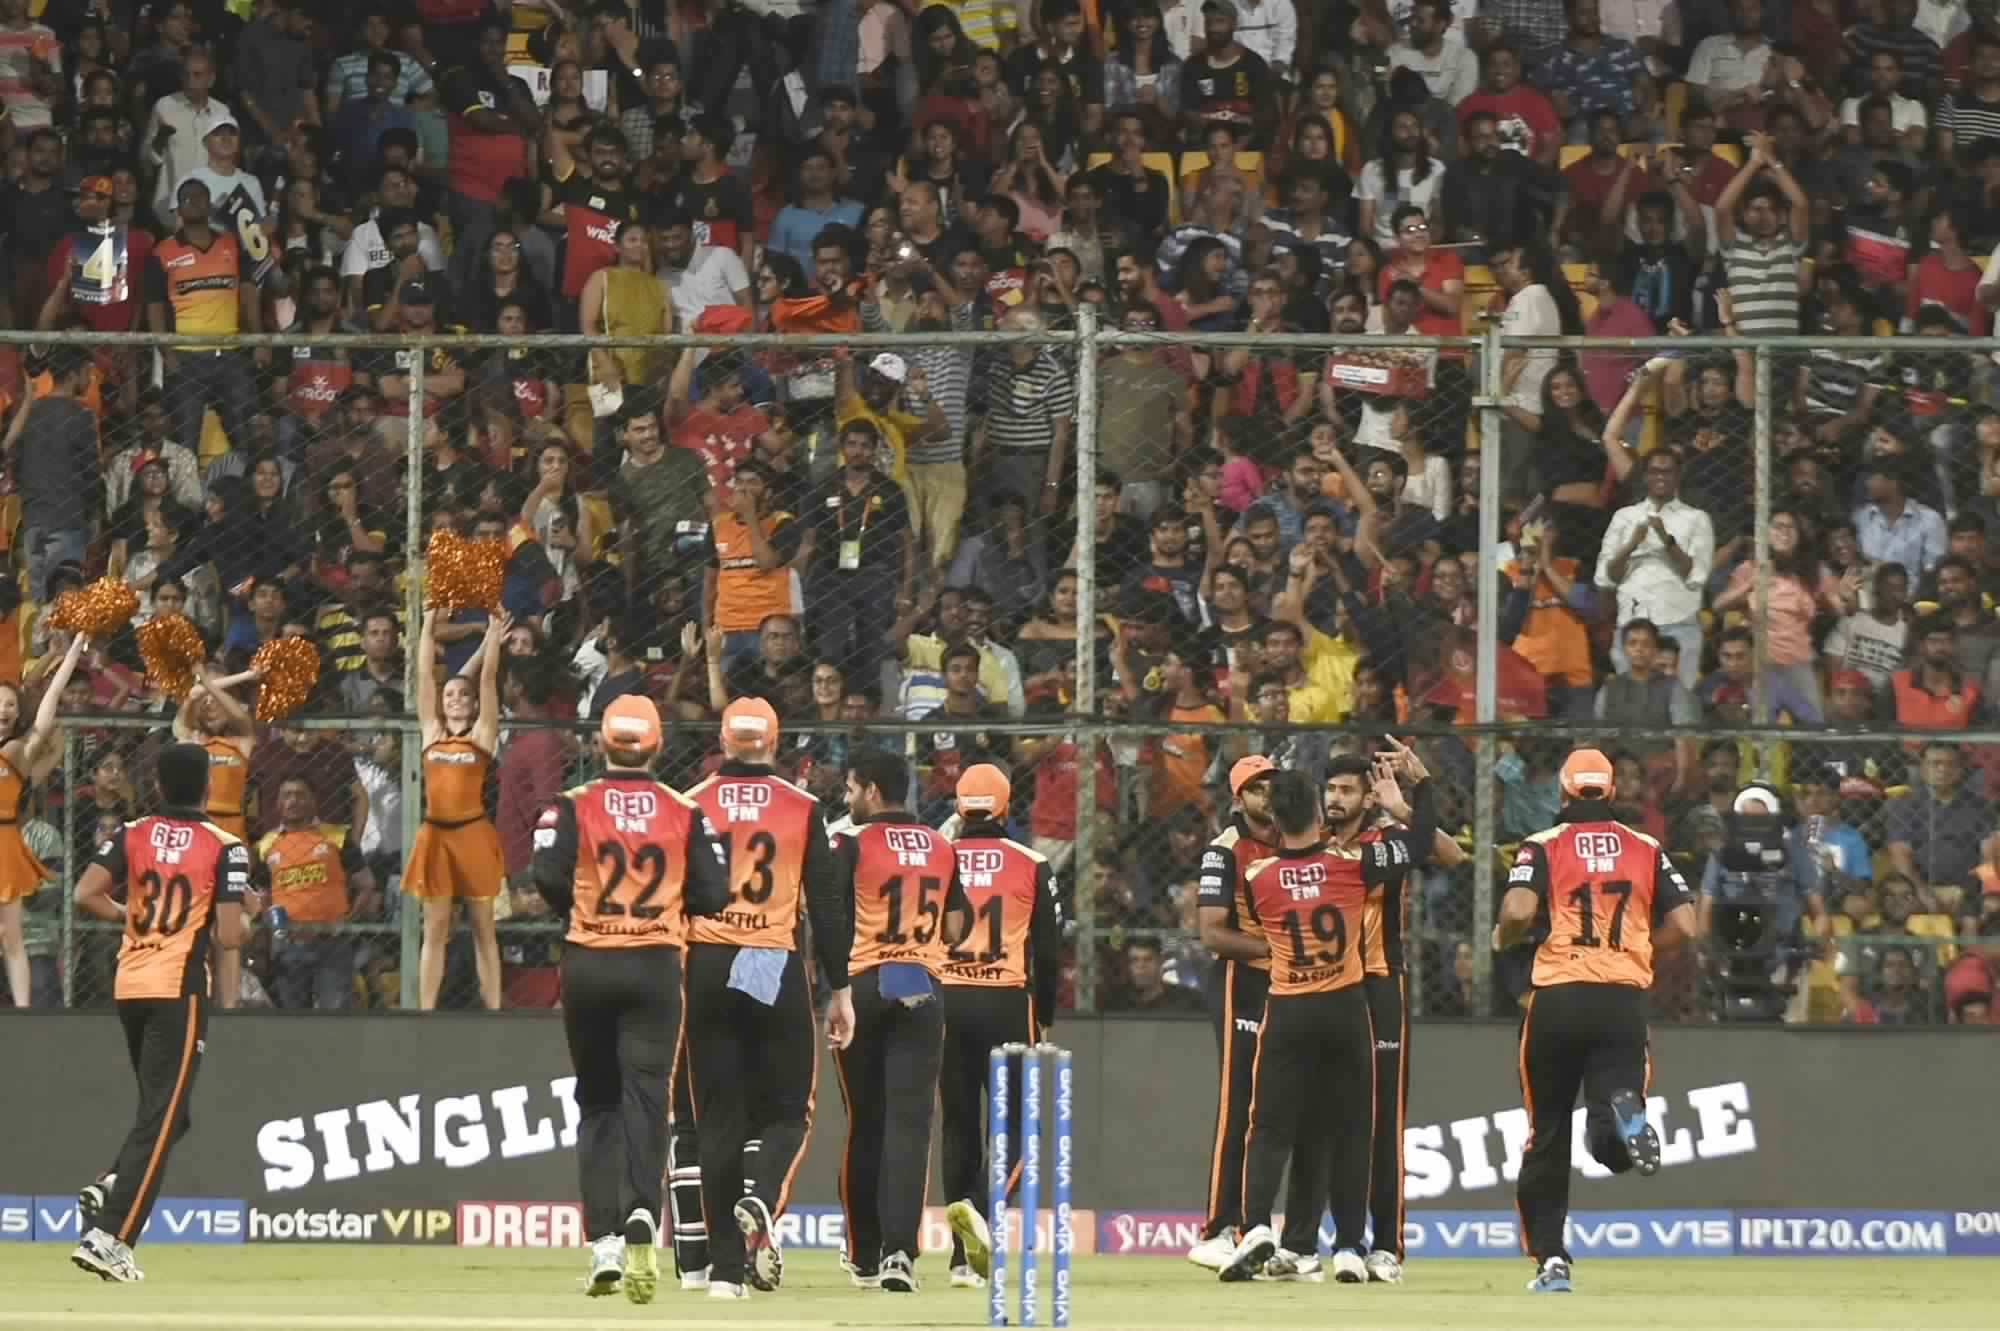 SRH announce their list of retained and released players | IANS